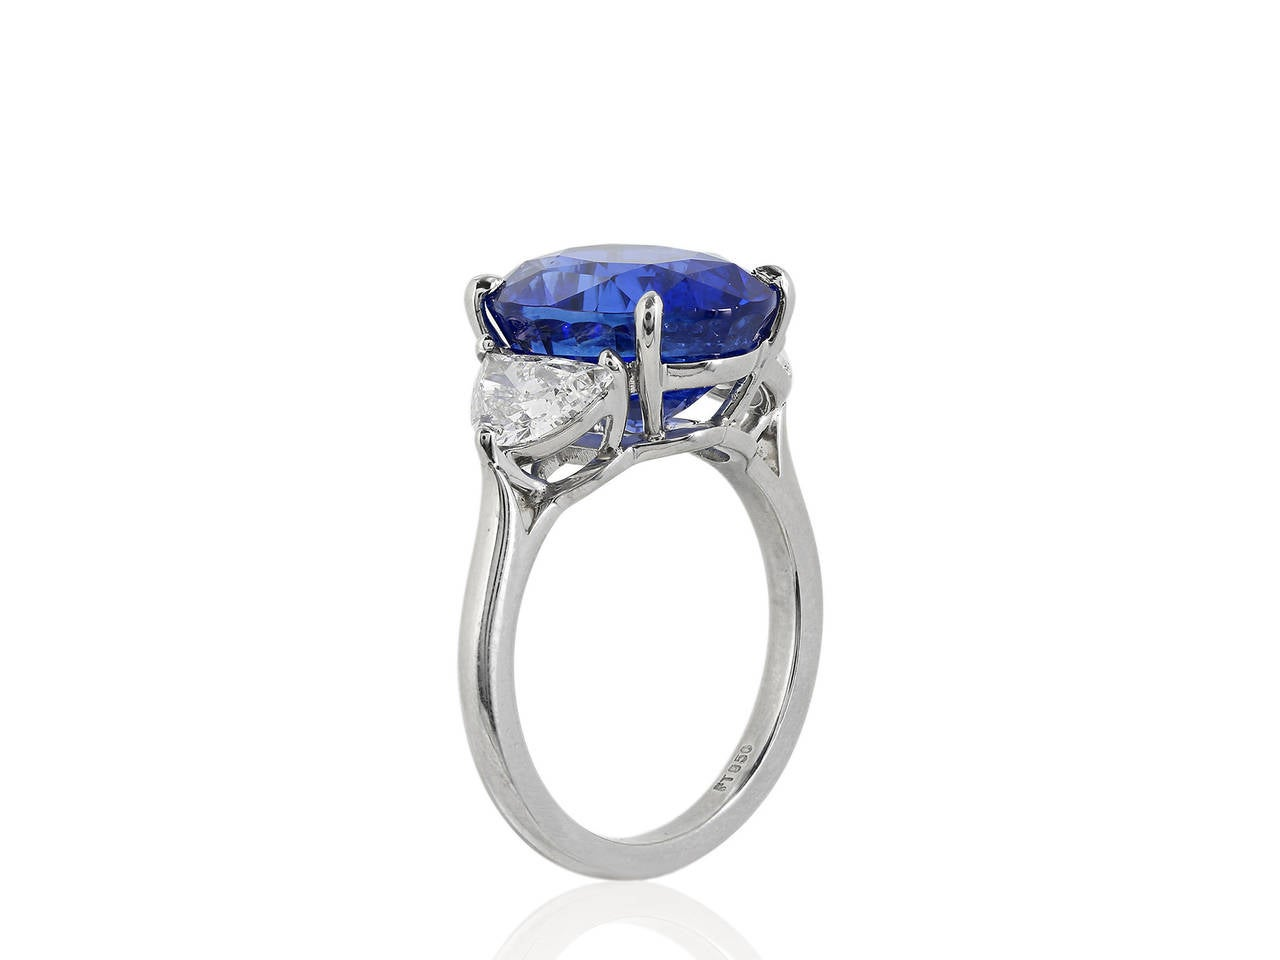 Platinum custom made 3 stone ring consisting of one oval shaped blue sapphire weighing 8.46 carats with Tokyo gem lab certificate #24070332 stating No Heat, the center stone is flanked by 2 brilliant cut half moon diamonds having a total weight of